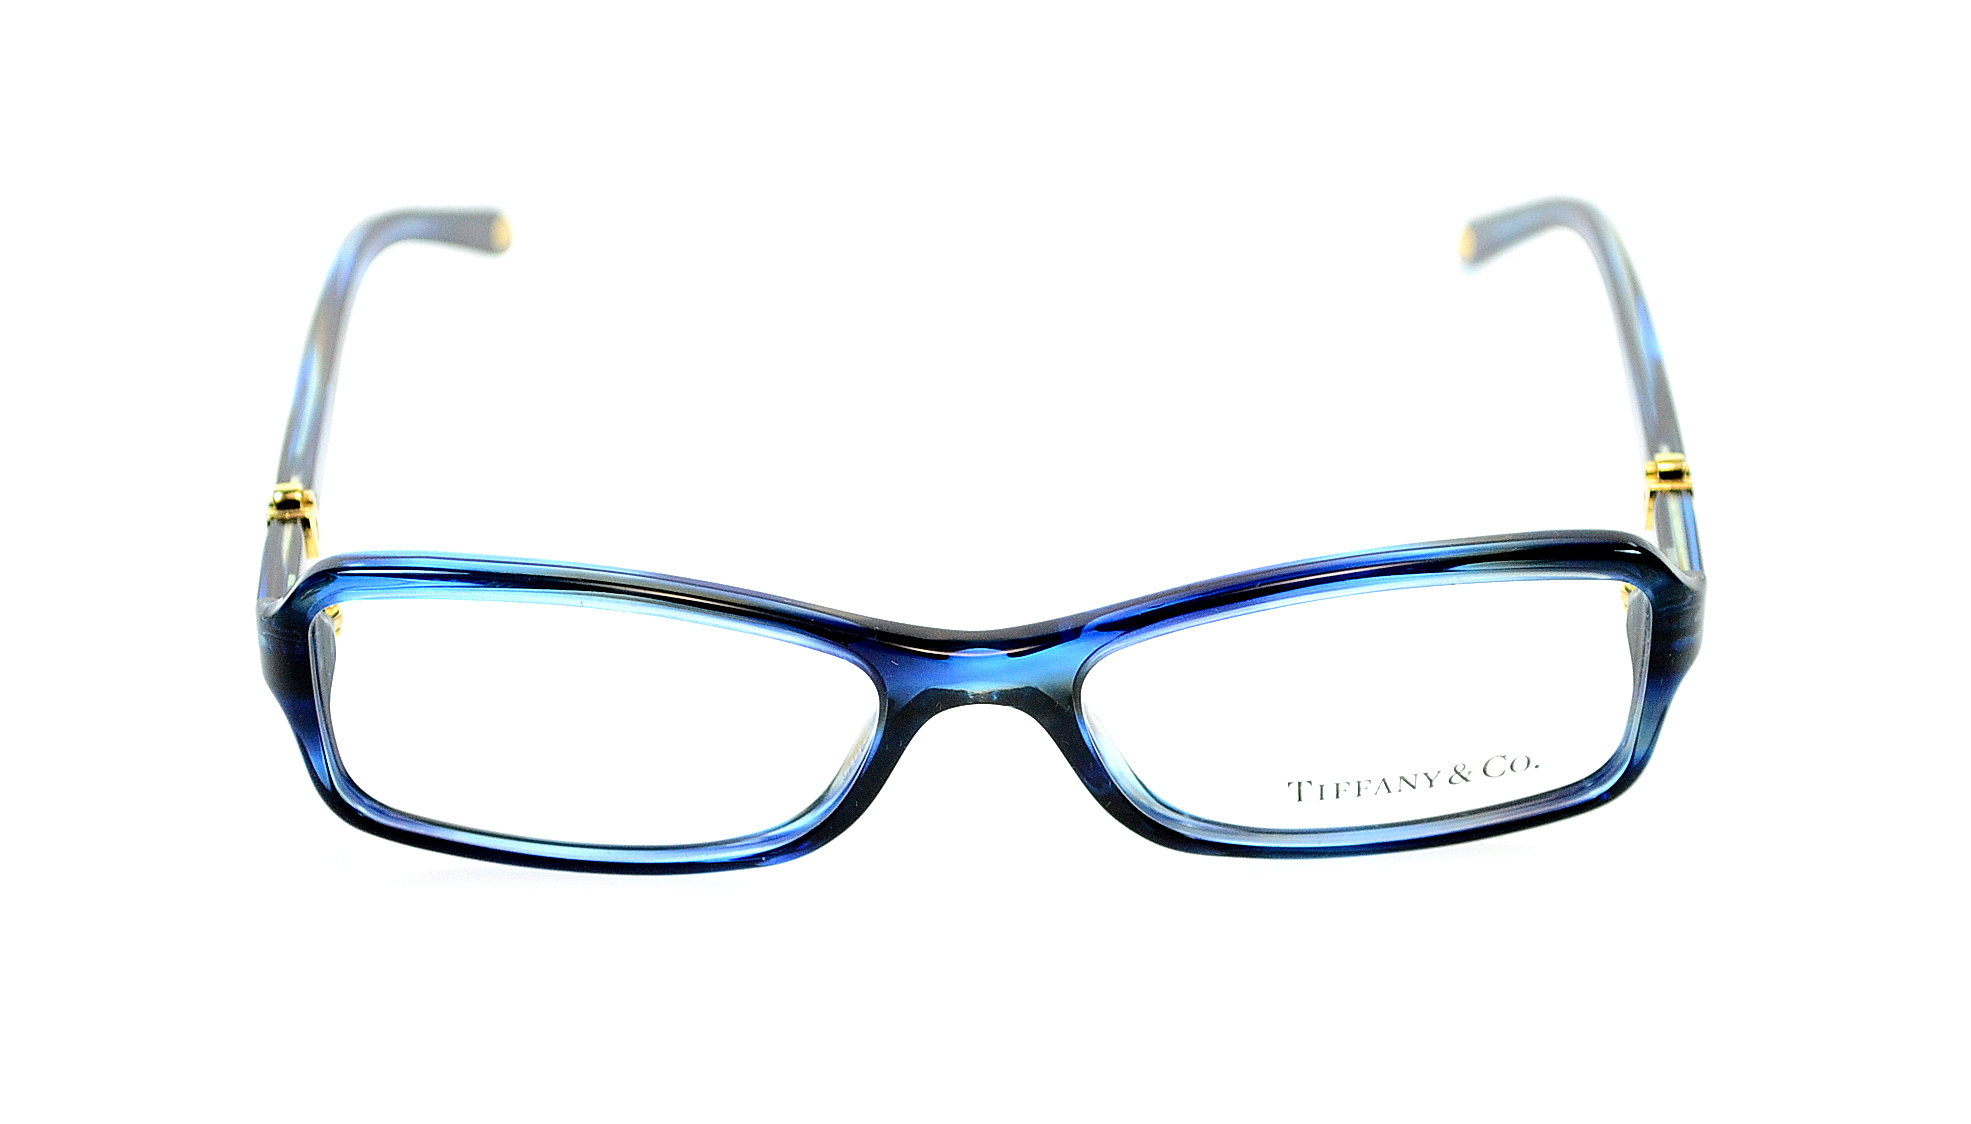 Tiffany Glasses Frames New York : Tiffany & Co Womens Eyewear Frames TF2061 54 mm Ocean Blue ...